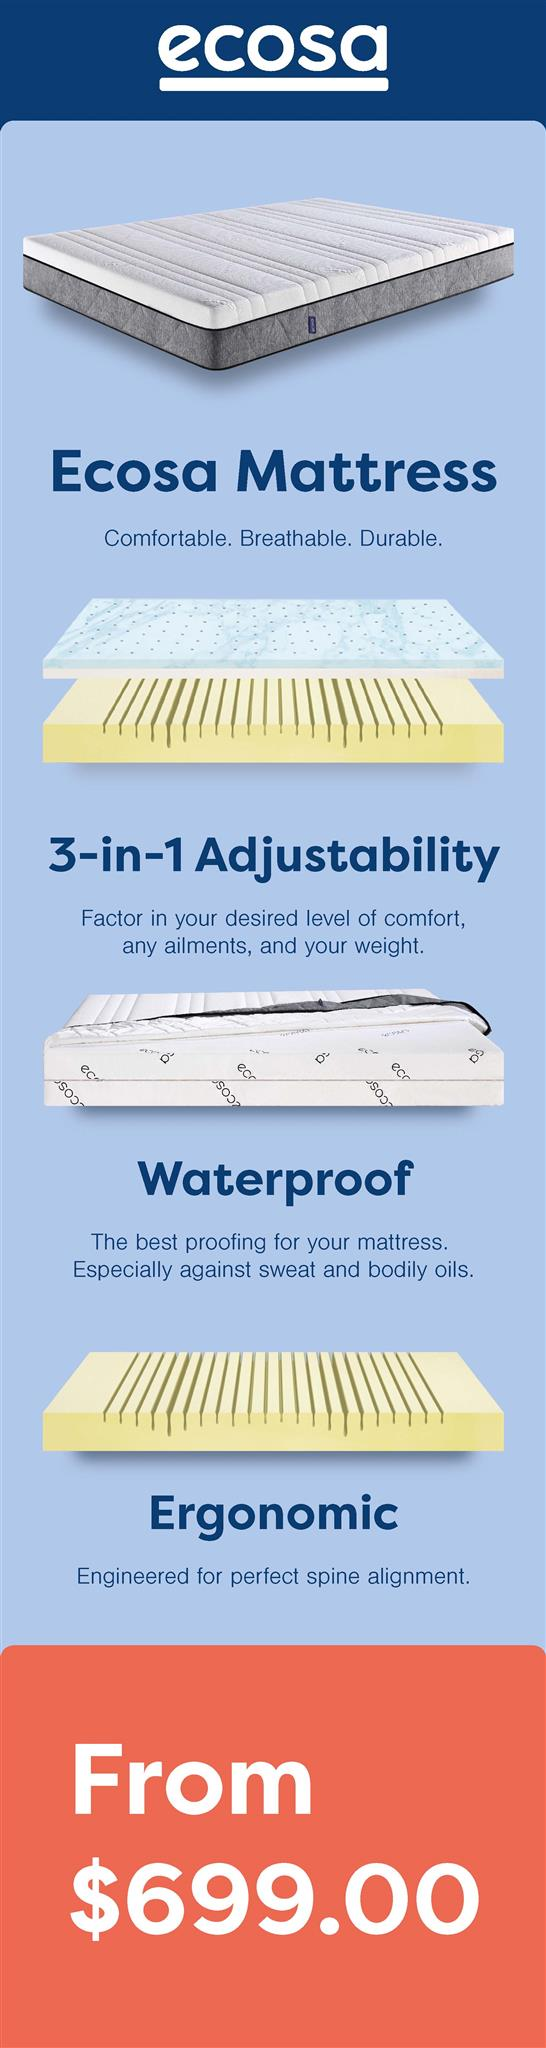 where to buy ecosa mattress